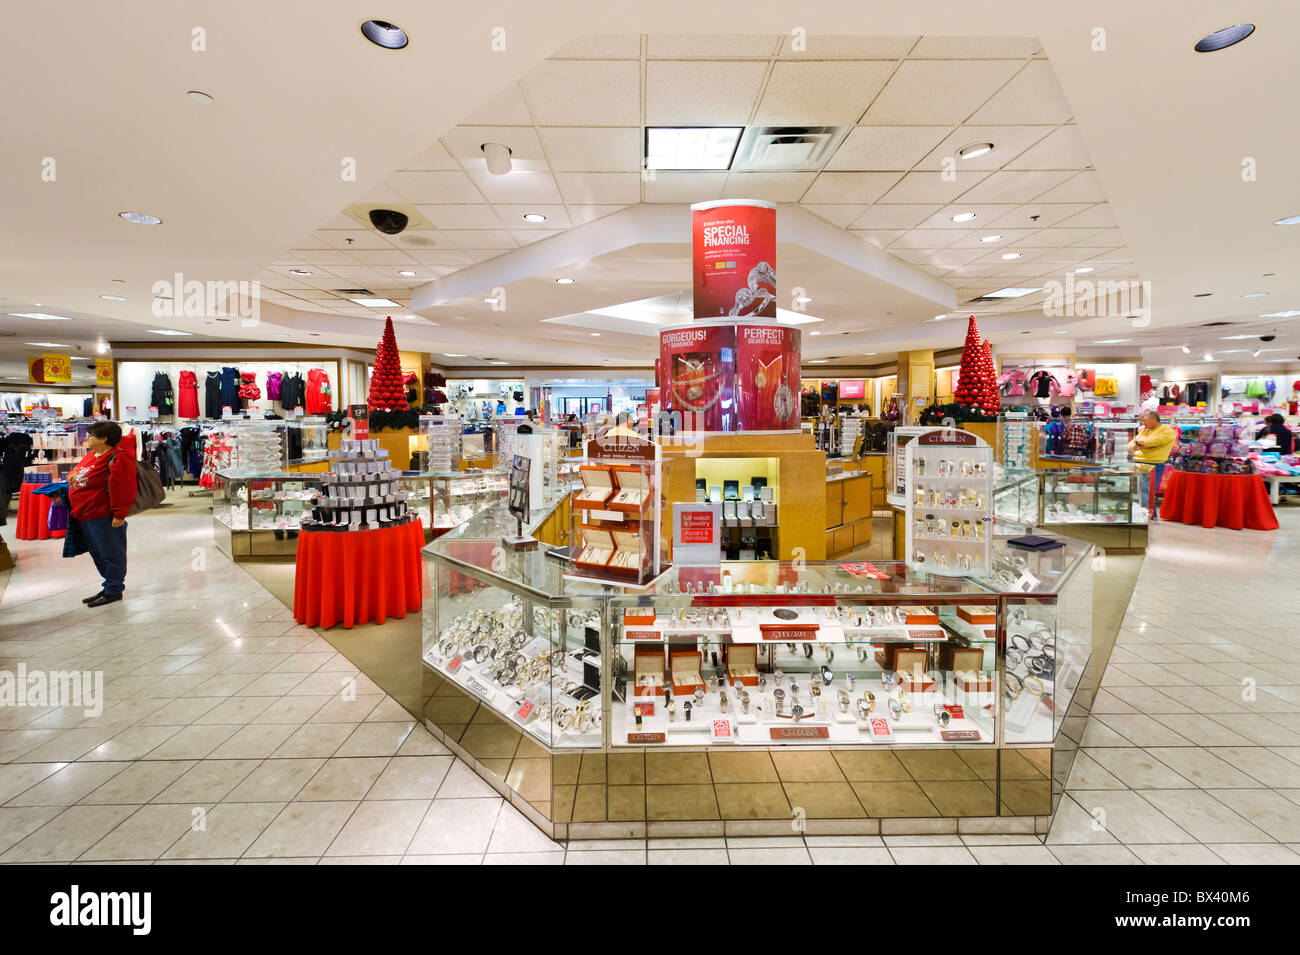 Watch and Jewelry counter in a JCPenney store at the Eagle Ridge Mall, Lake Wales, Central Florida, USA - Stock Image